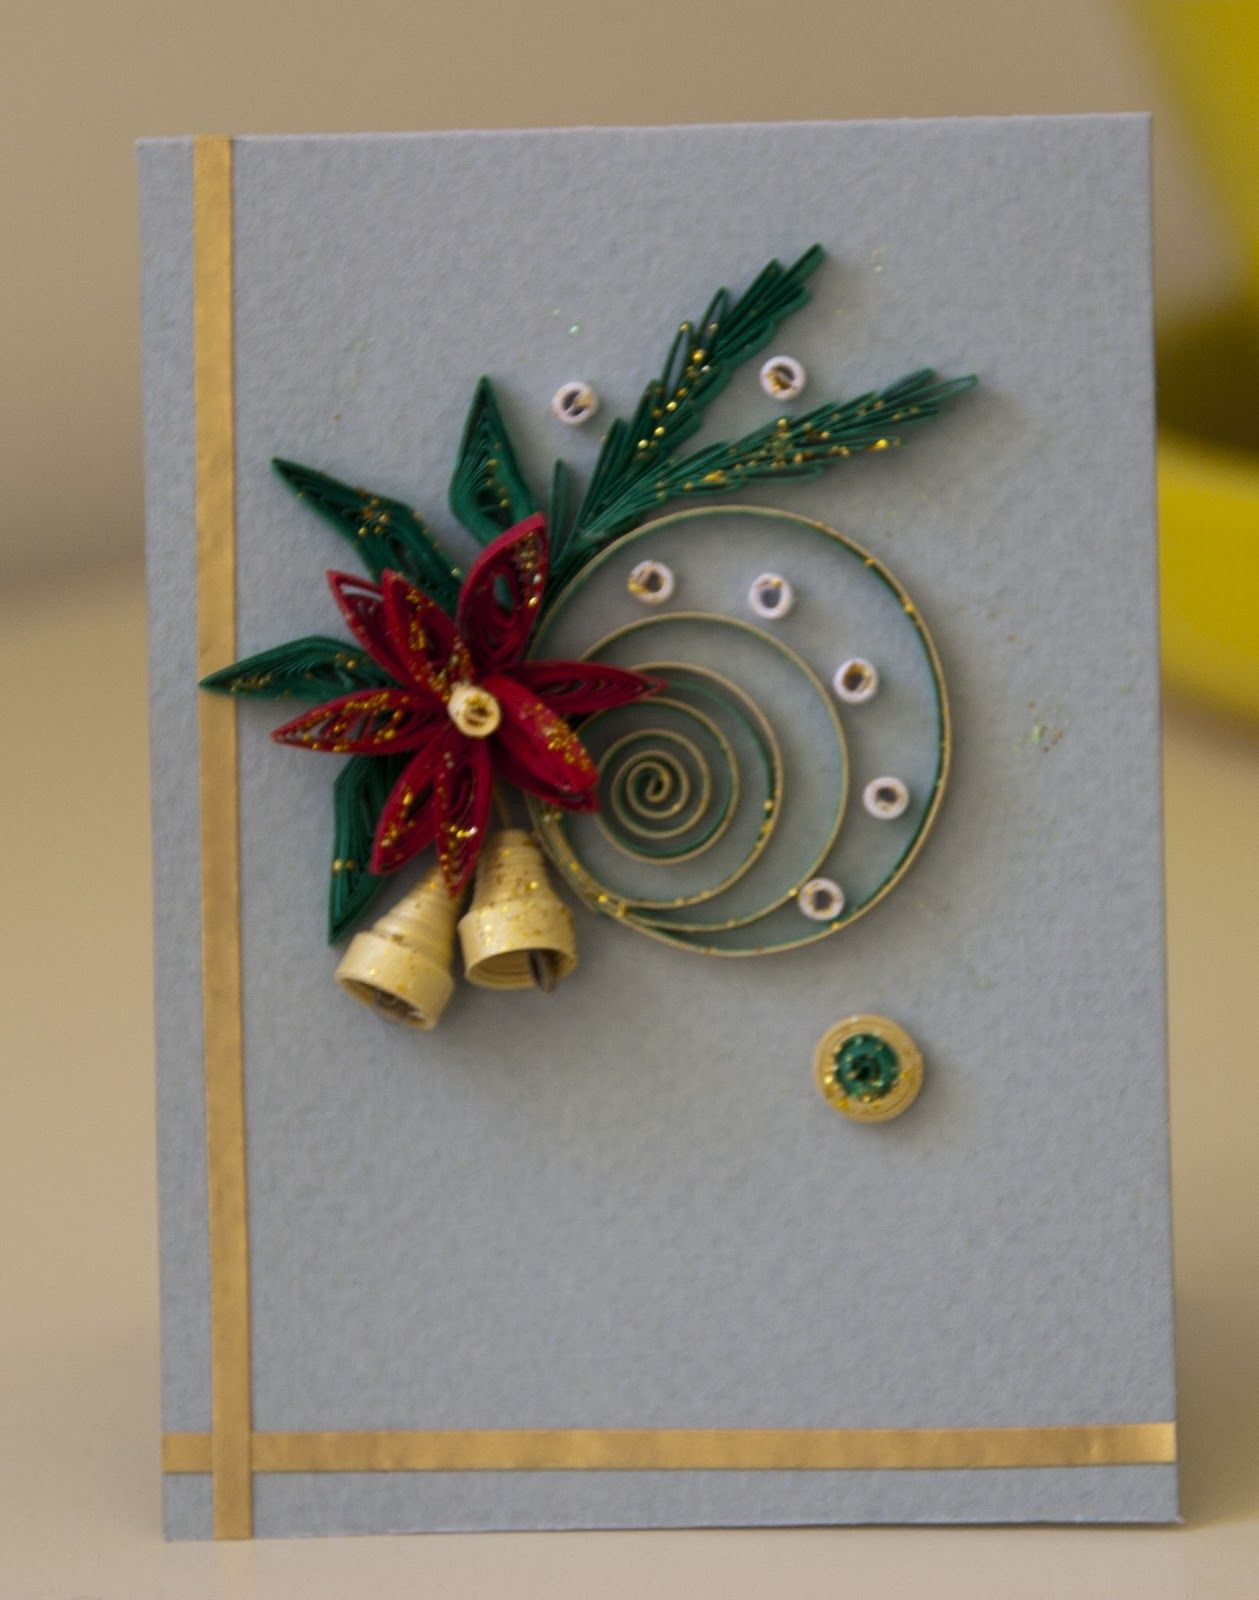 Preparation for christmas 2 quilling pinterest quilling preparation for christmas 2 m4hsunfo